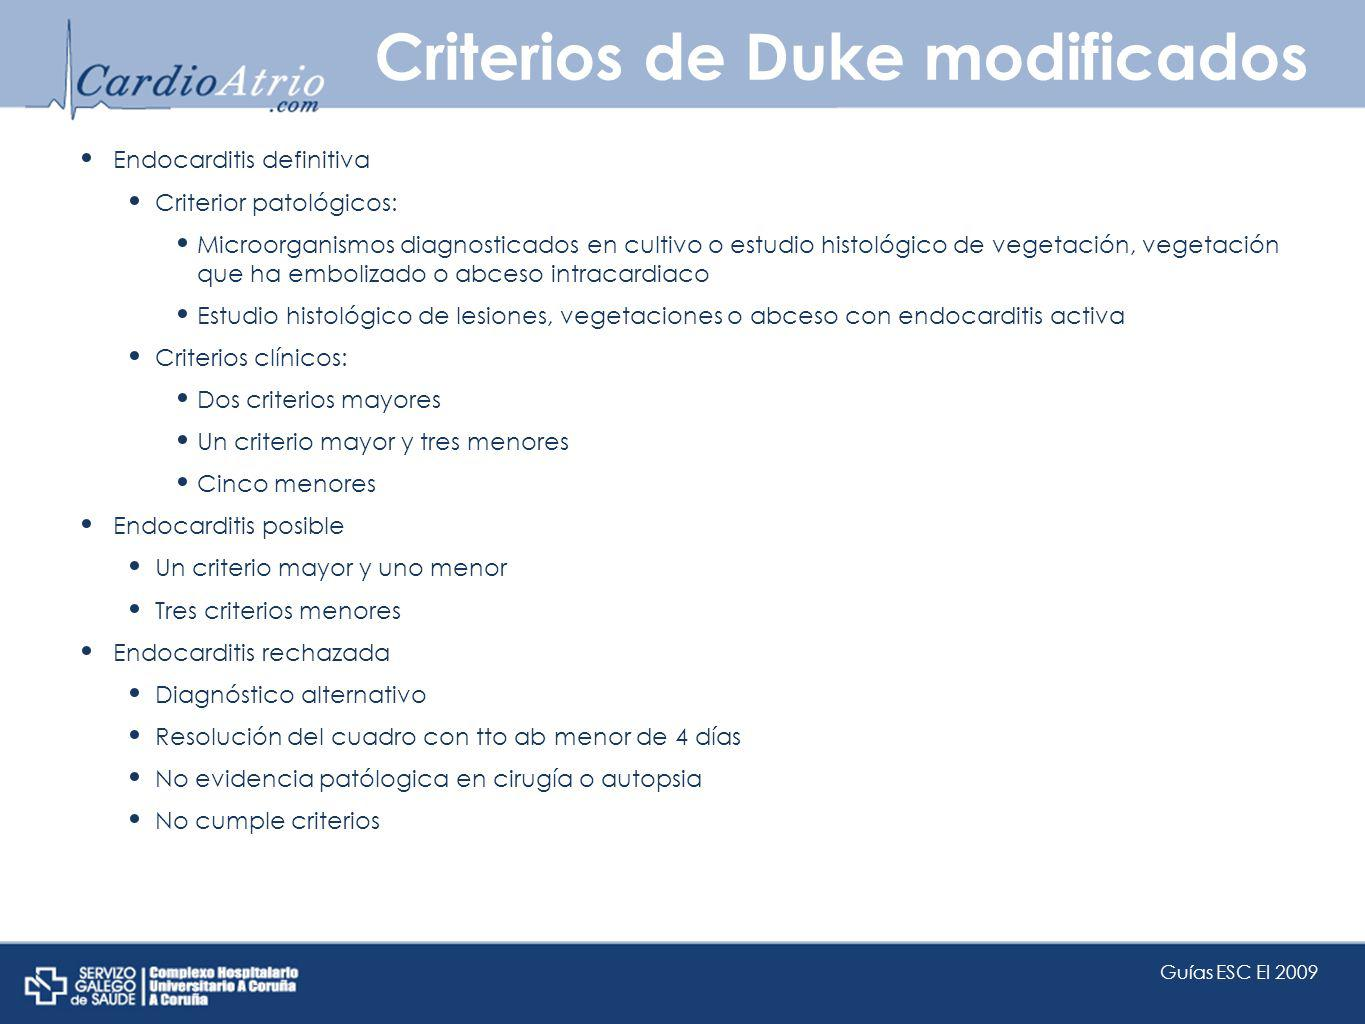 Criterios de Duke modificados